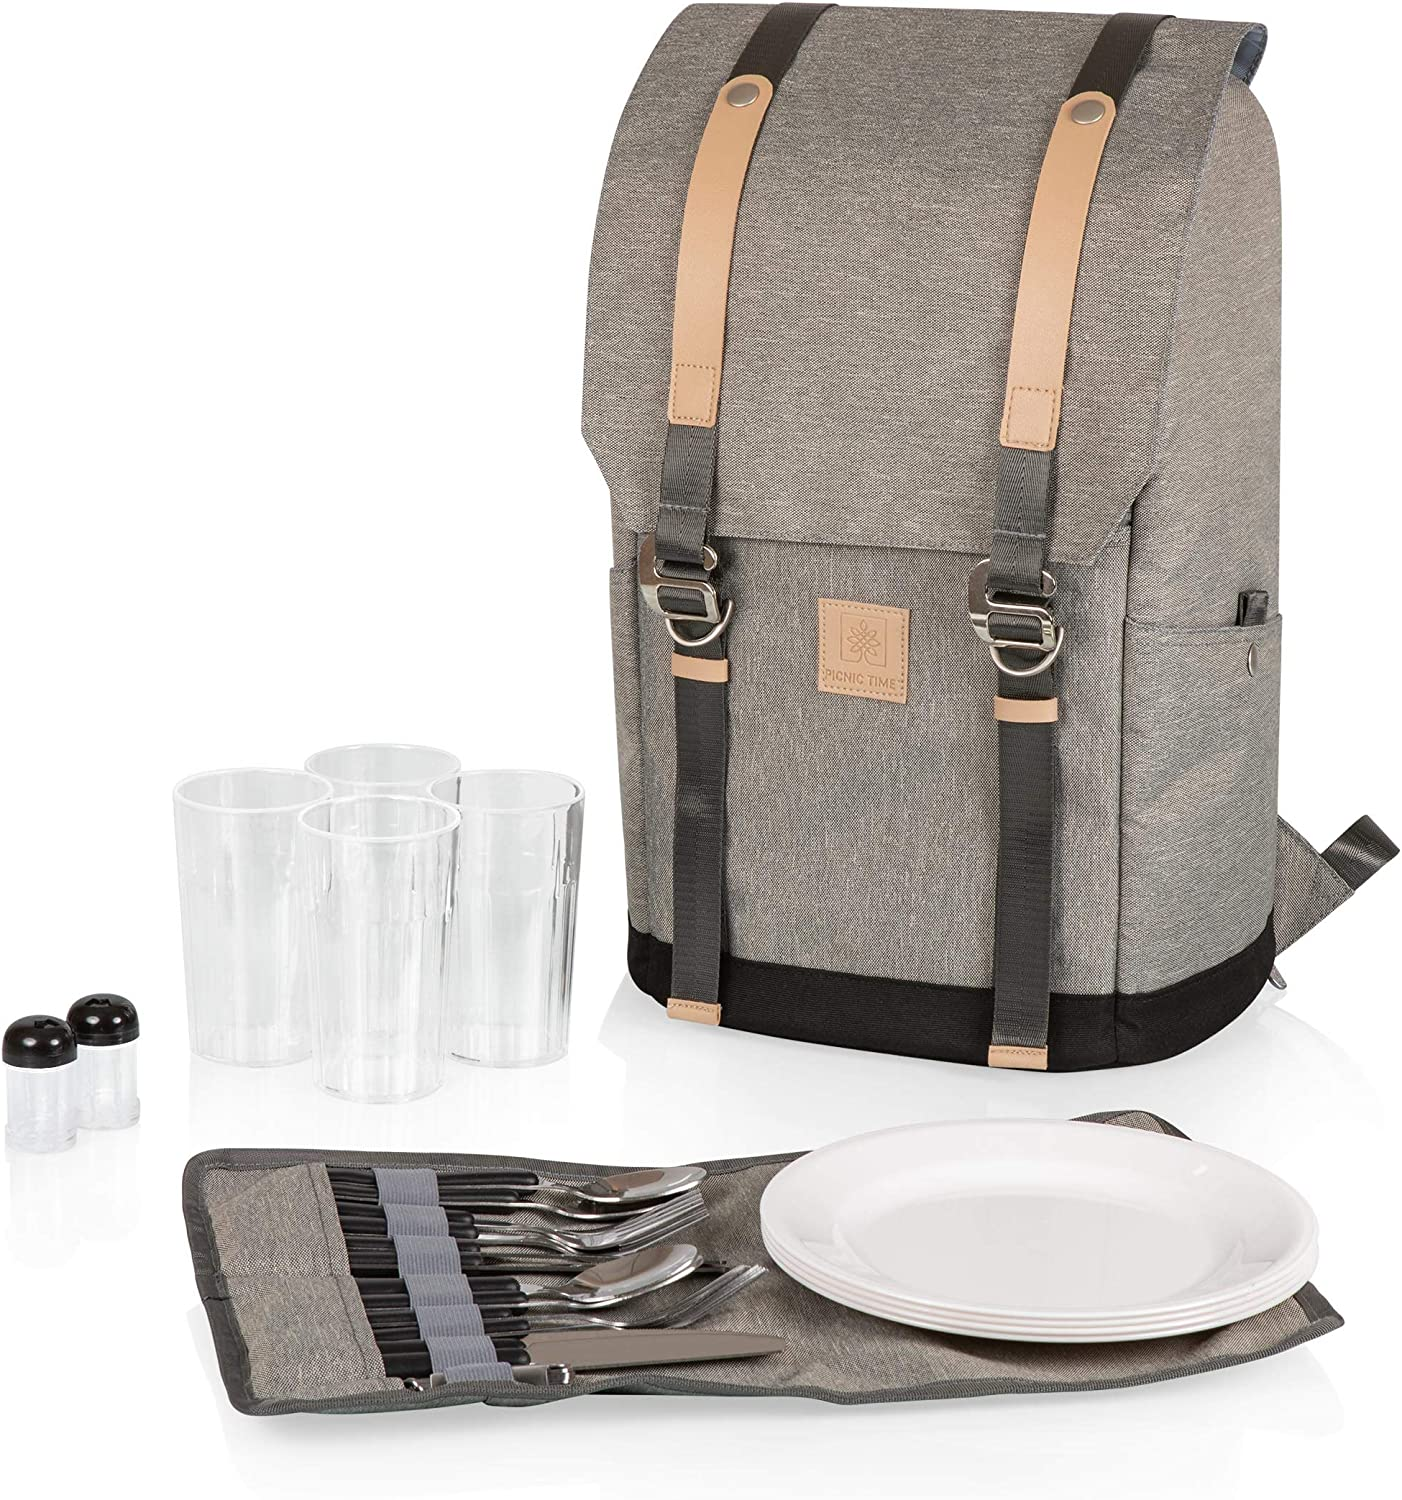 PICNIC TIME PT-Frontier Picnic Backpack, Heathered Gray : Patio, Lawn & Garden